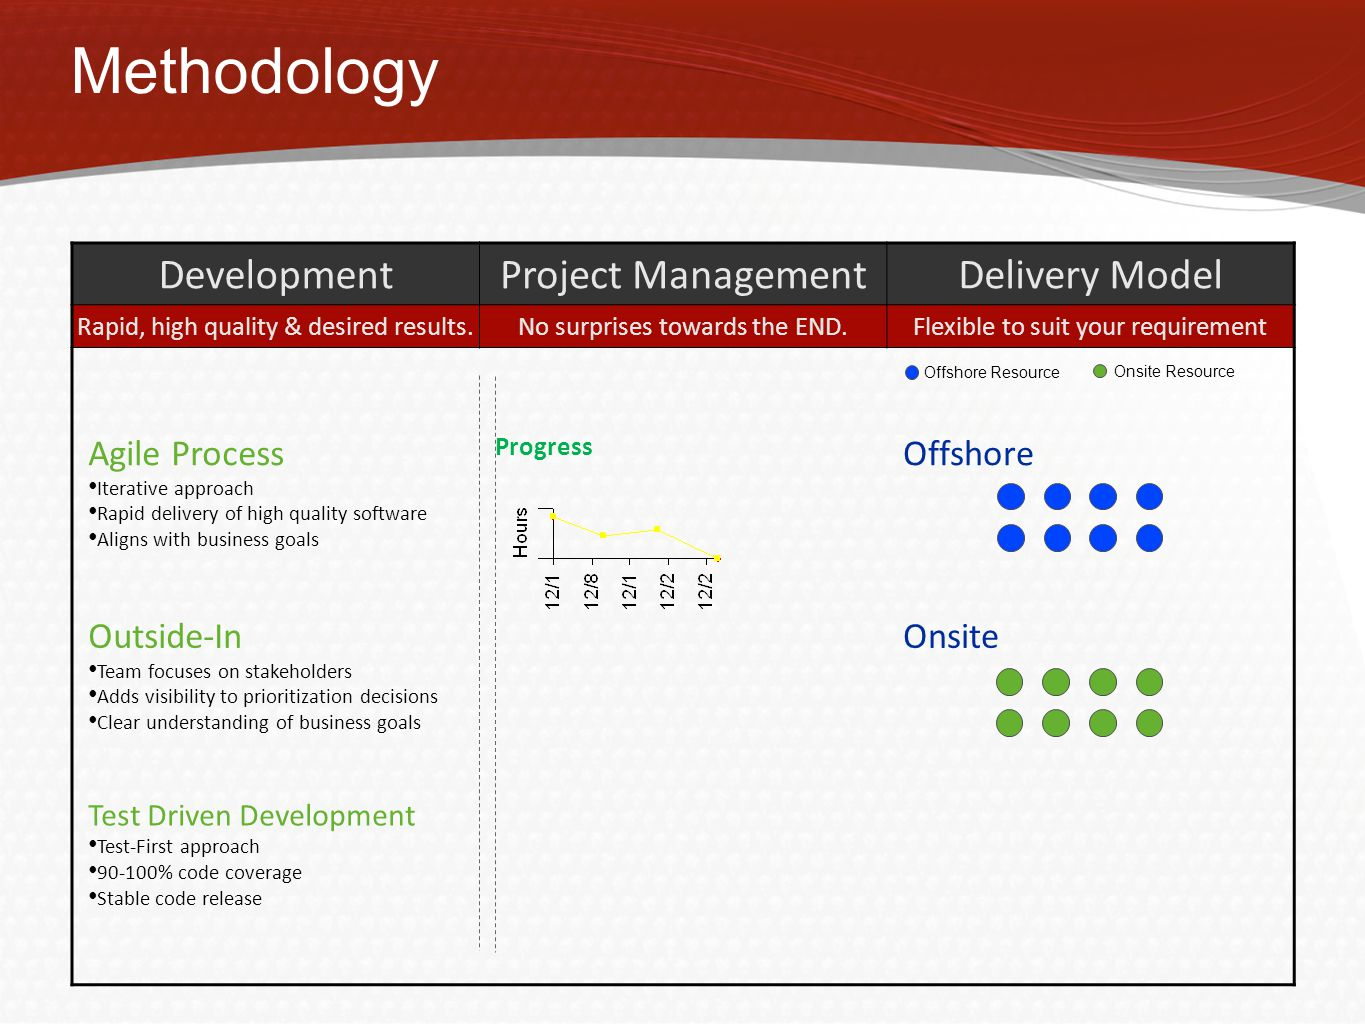 Methodology DevelopmentProject ManagementDelivery Model Rapid, high quality & desired results.No surprises towards the END.Flexible to suit your requirement Agile Process Iterative approach Rapid delivery of high quality software Aligns with business goals Progress Offshore Outside-In Team focuses on stakeholders Adds visibility to prioritization decisions Clear understanding of business goals Onsite Test Driven Development Test-First approach 90-100% code coverage Stable code release Offshore Resource Onsite Resource